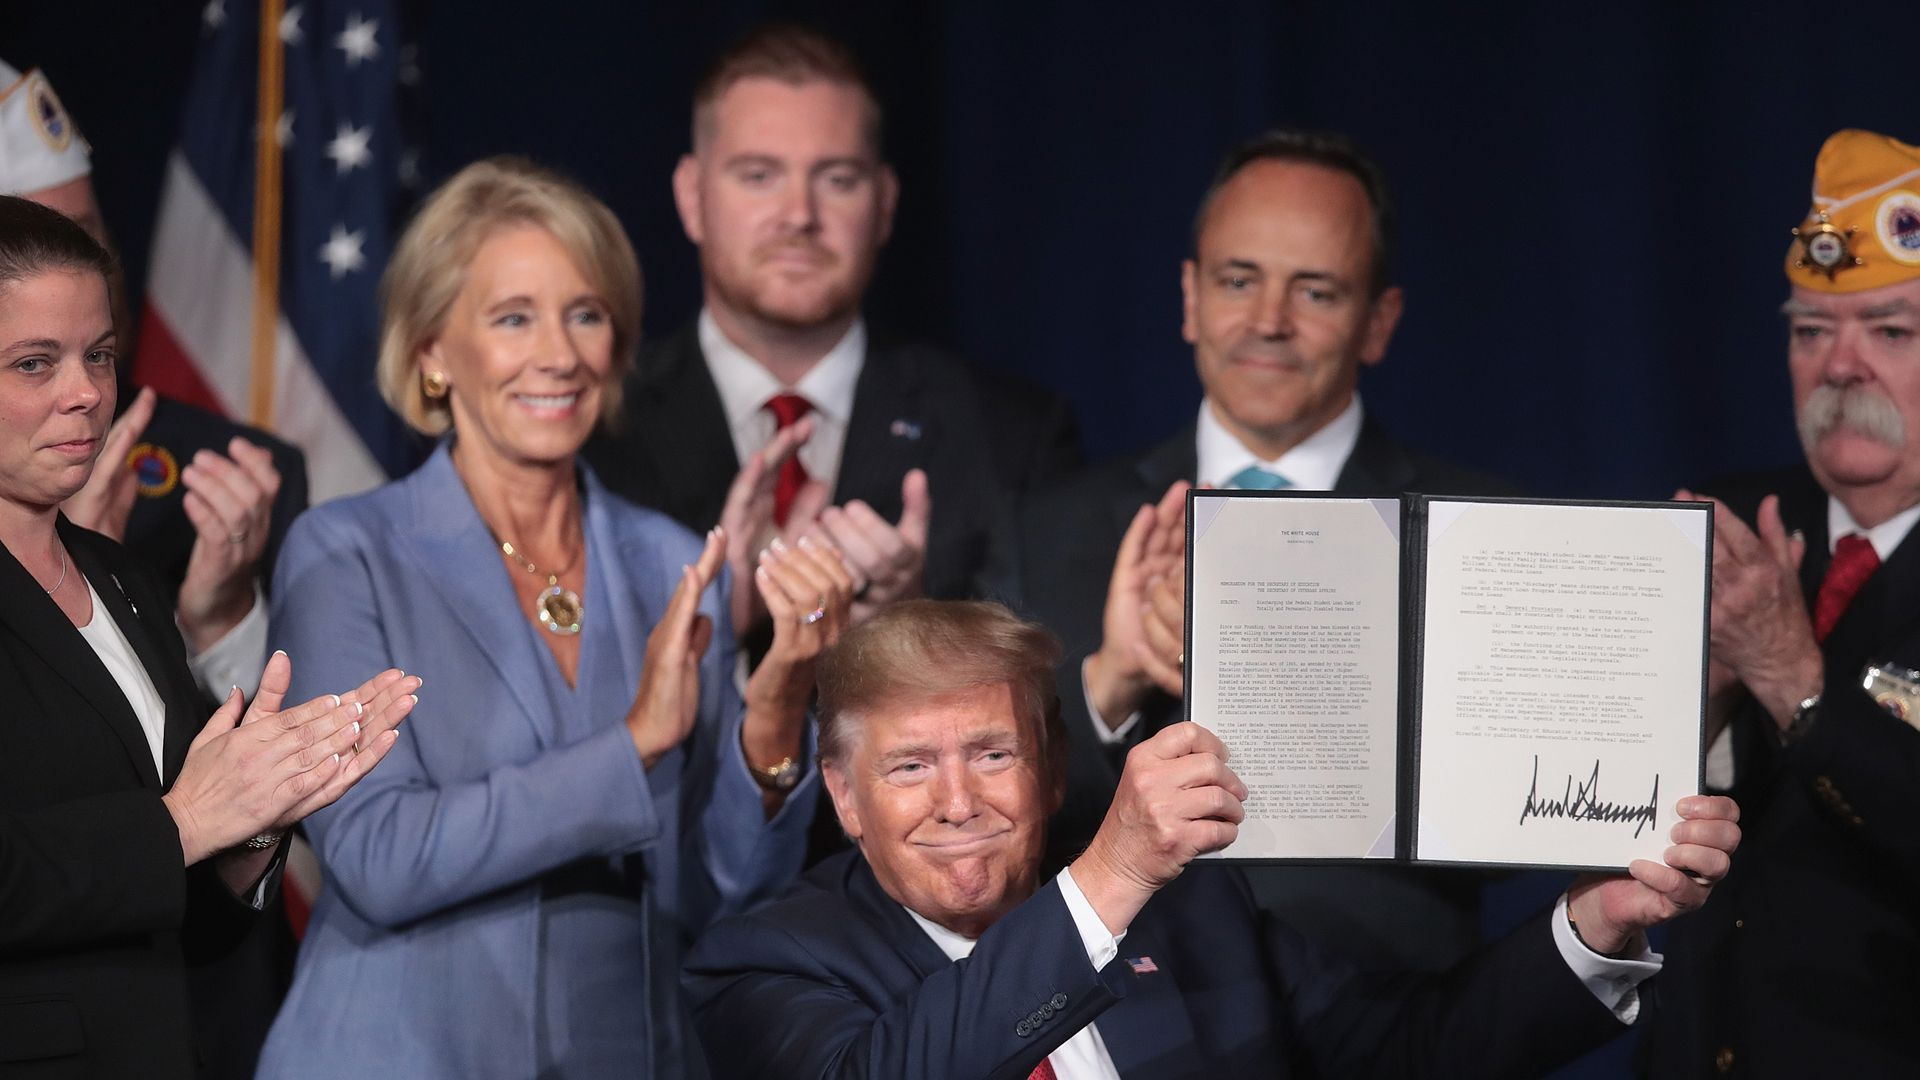 President Donald Trump signs a proclamation that will eliminate student loan debt for qualifying disabled veterans following a speech at the American Veterans